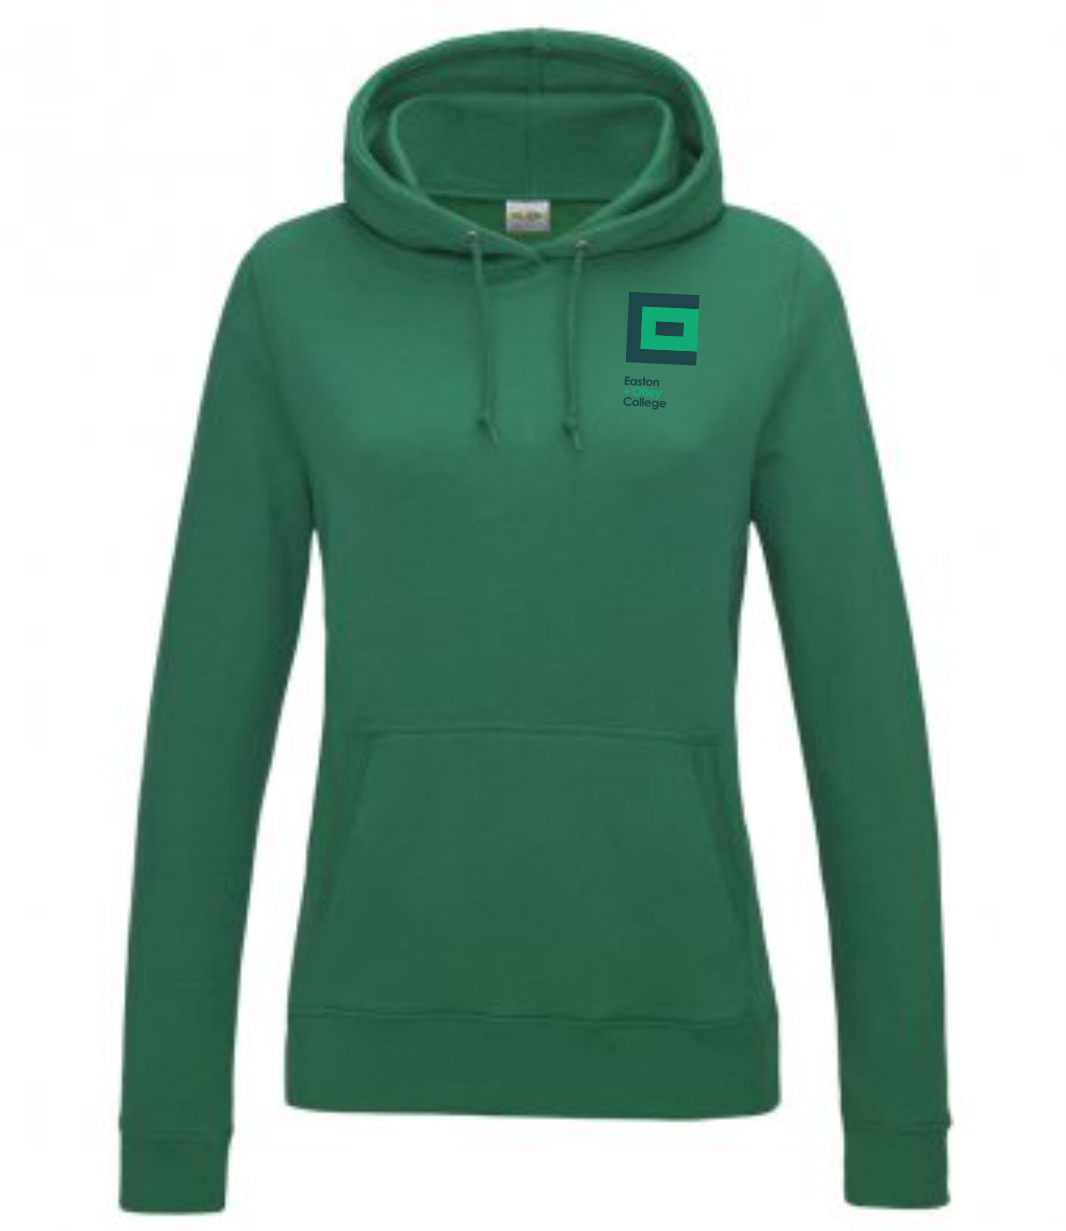 Easton College Animal Studies Girls Hoody